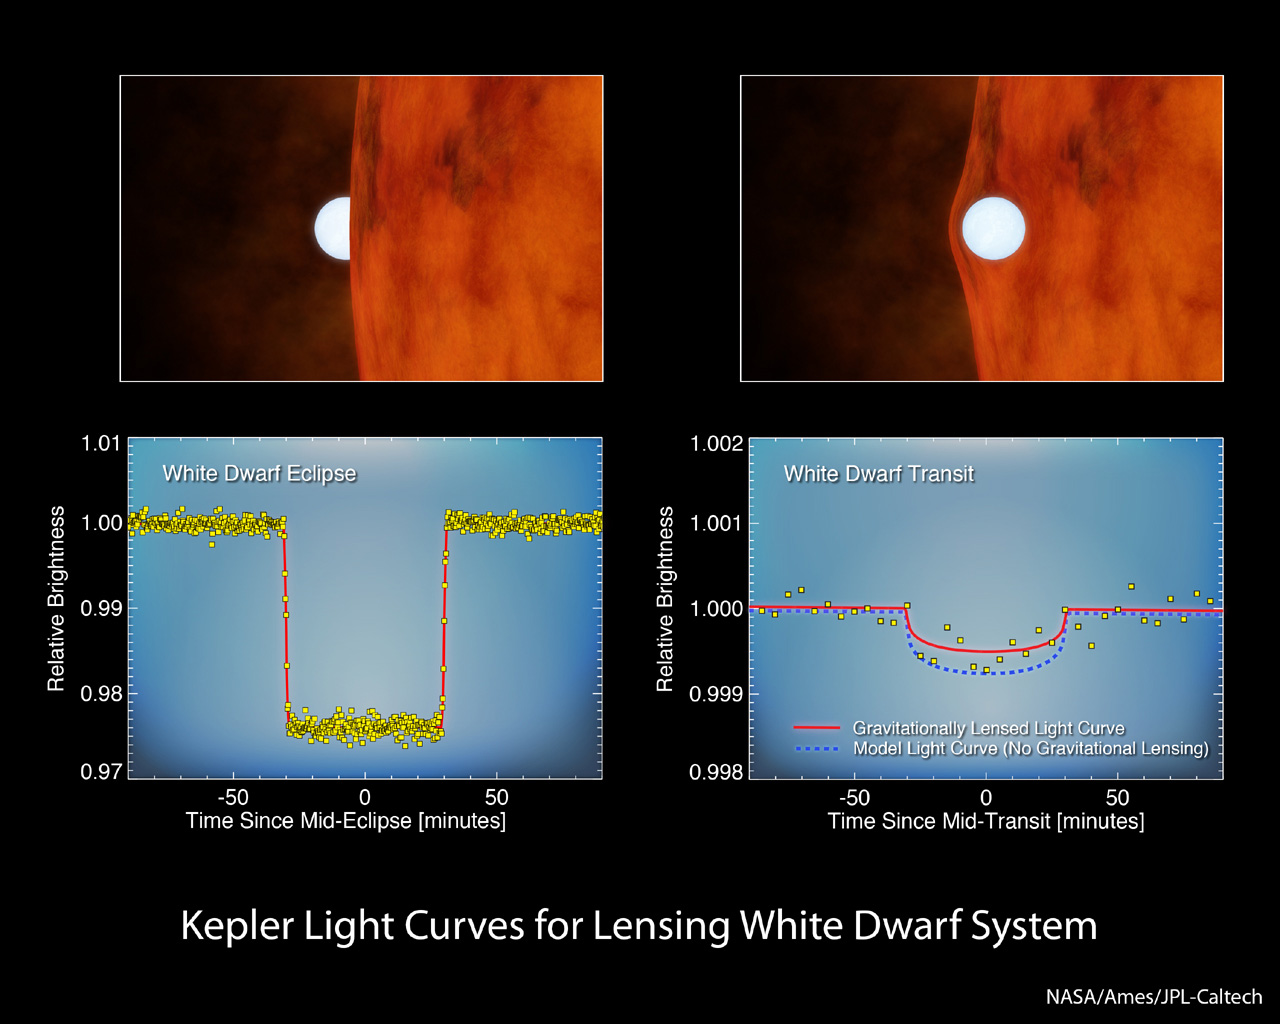 This chart shows data from NASA's Kepler space telescope, which looks for planets by monitoring changes in the brightness of stars. As planets orbit in front of a star, they block the starlight, causing periodic dips.